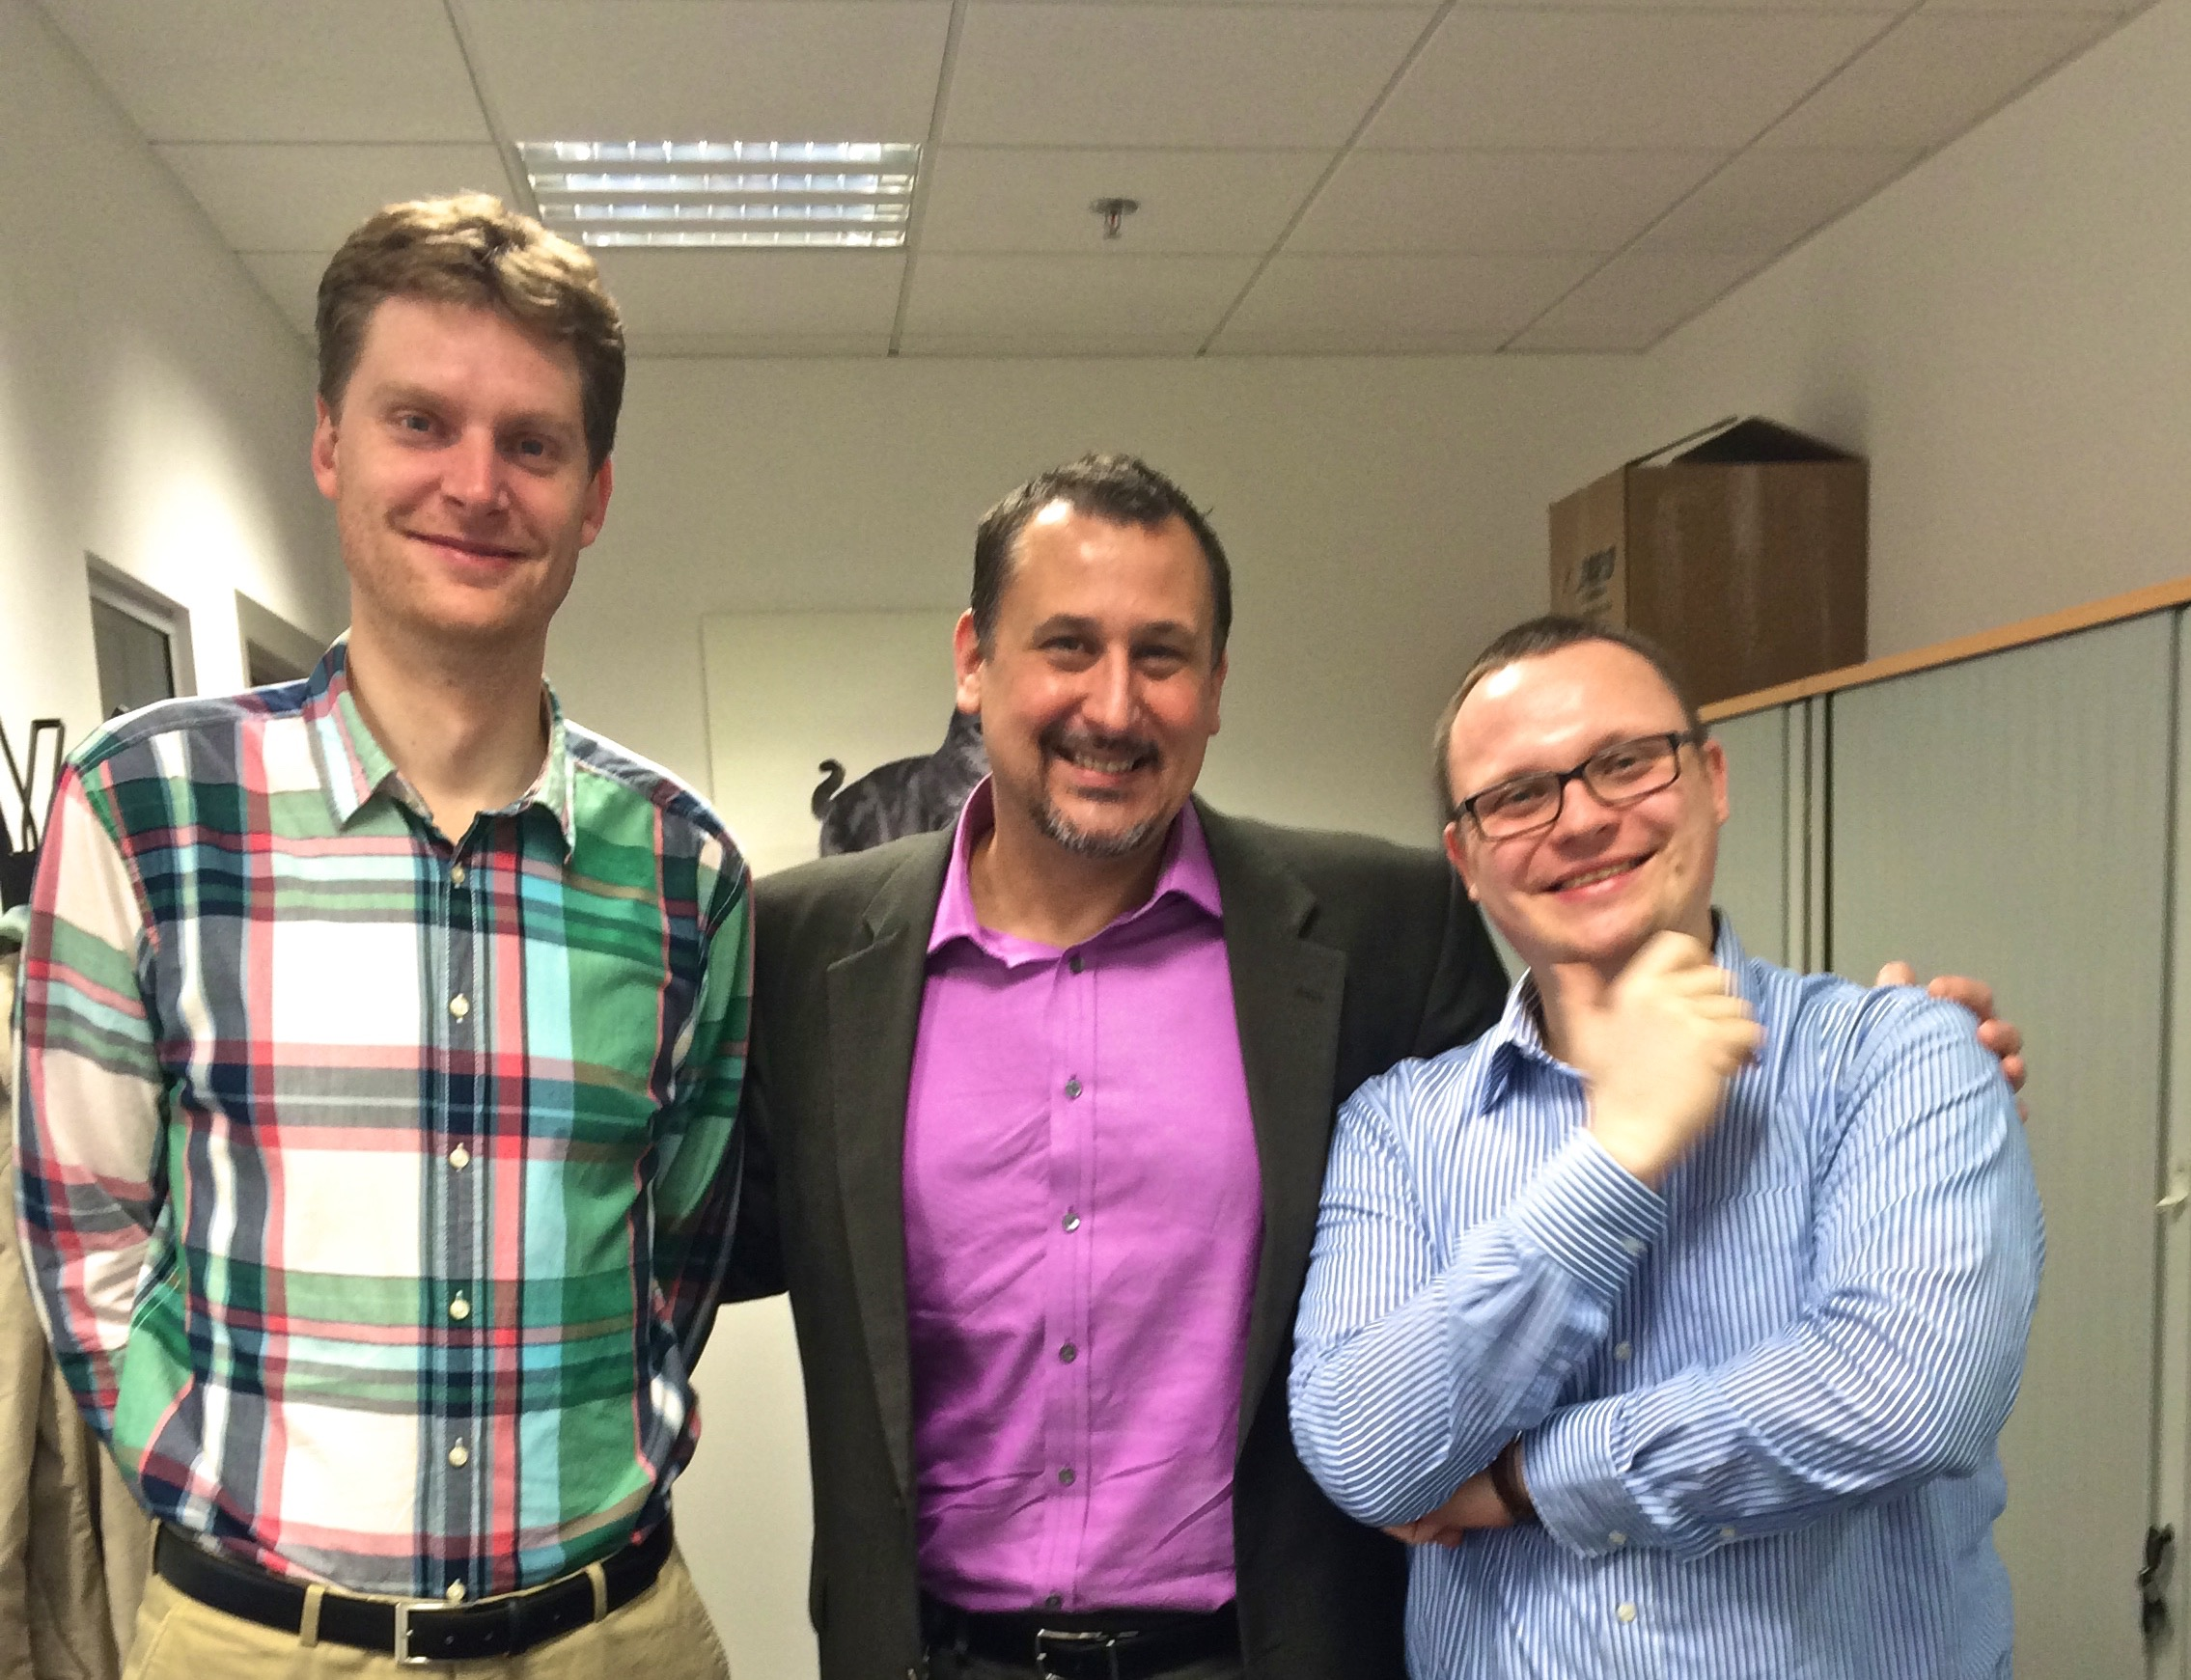 Lee (center) with Czech legal colleagues at Hill's Pet Nutrition EU Headquarters, Prague 2015